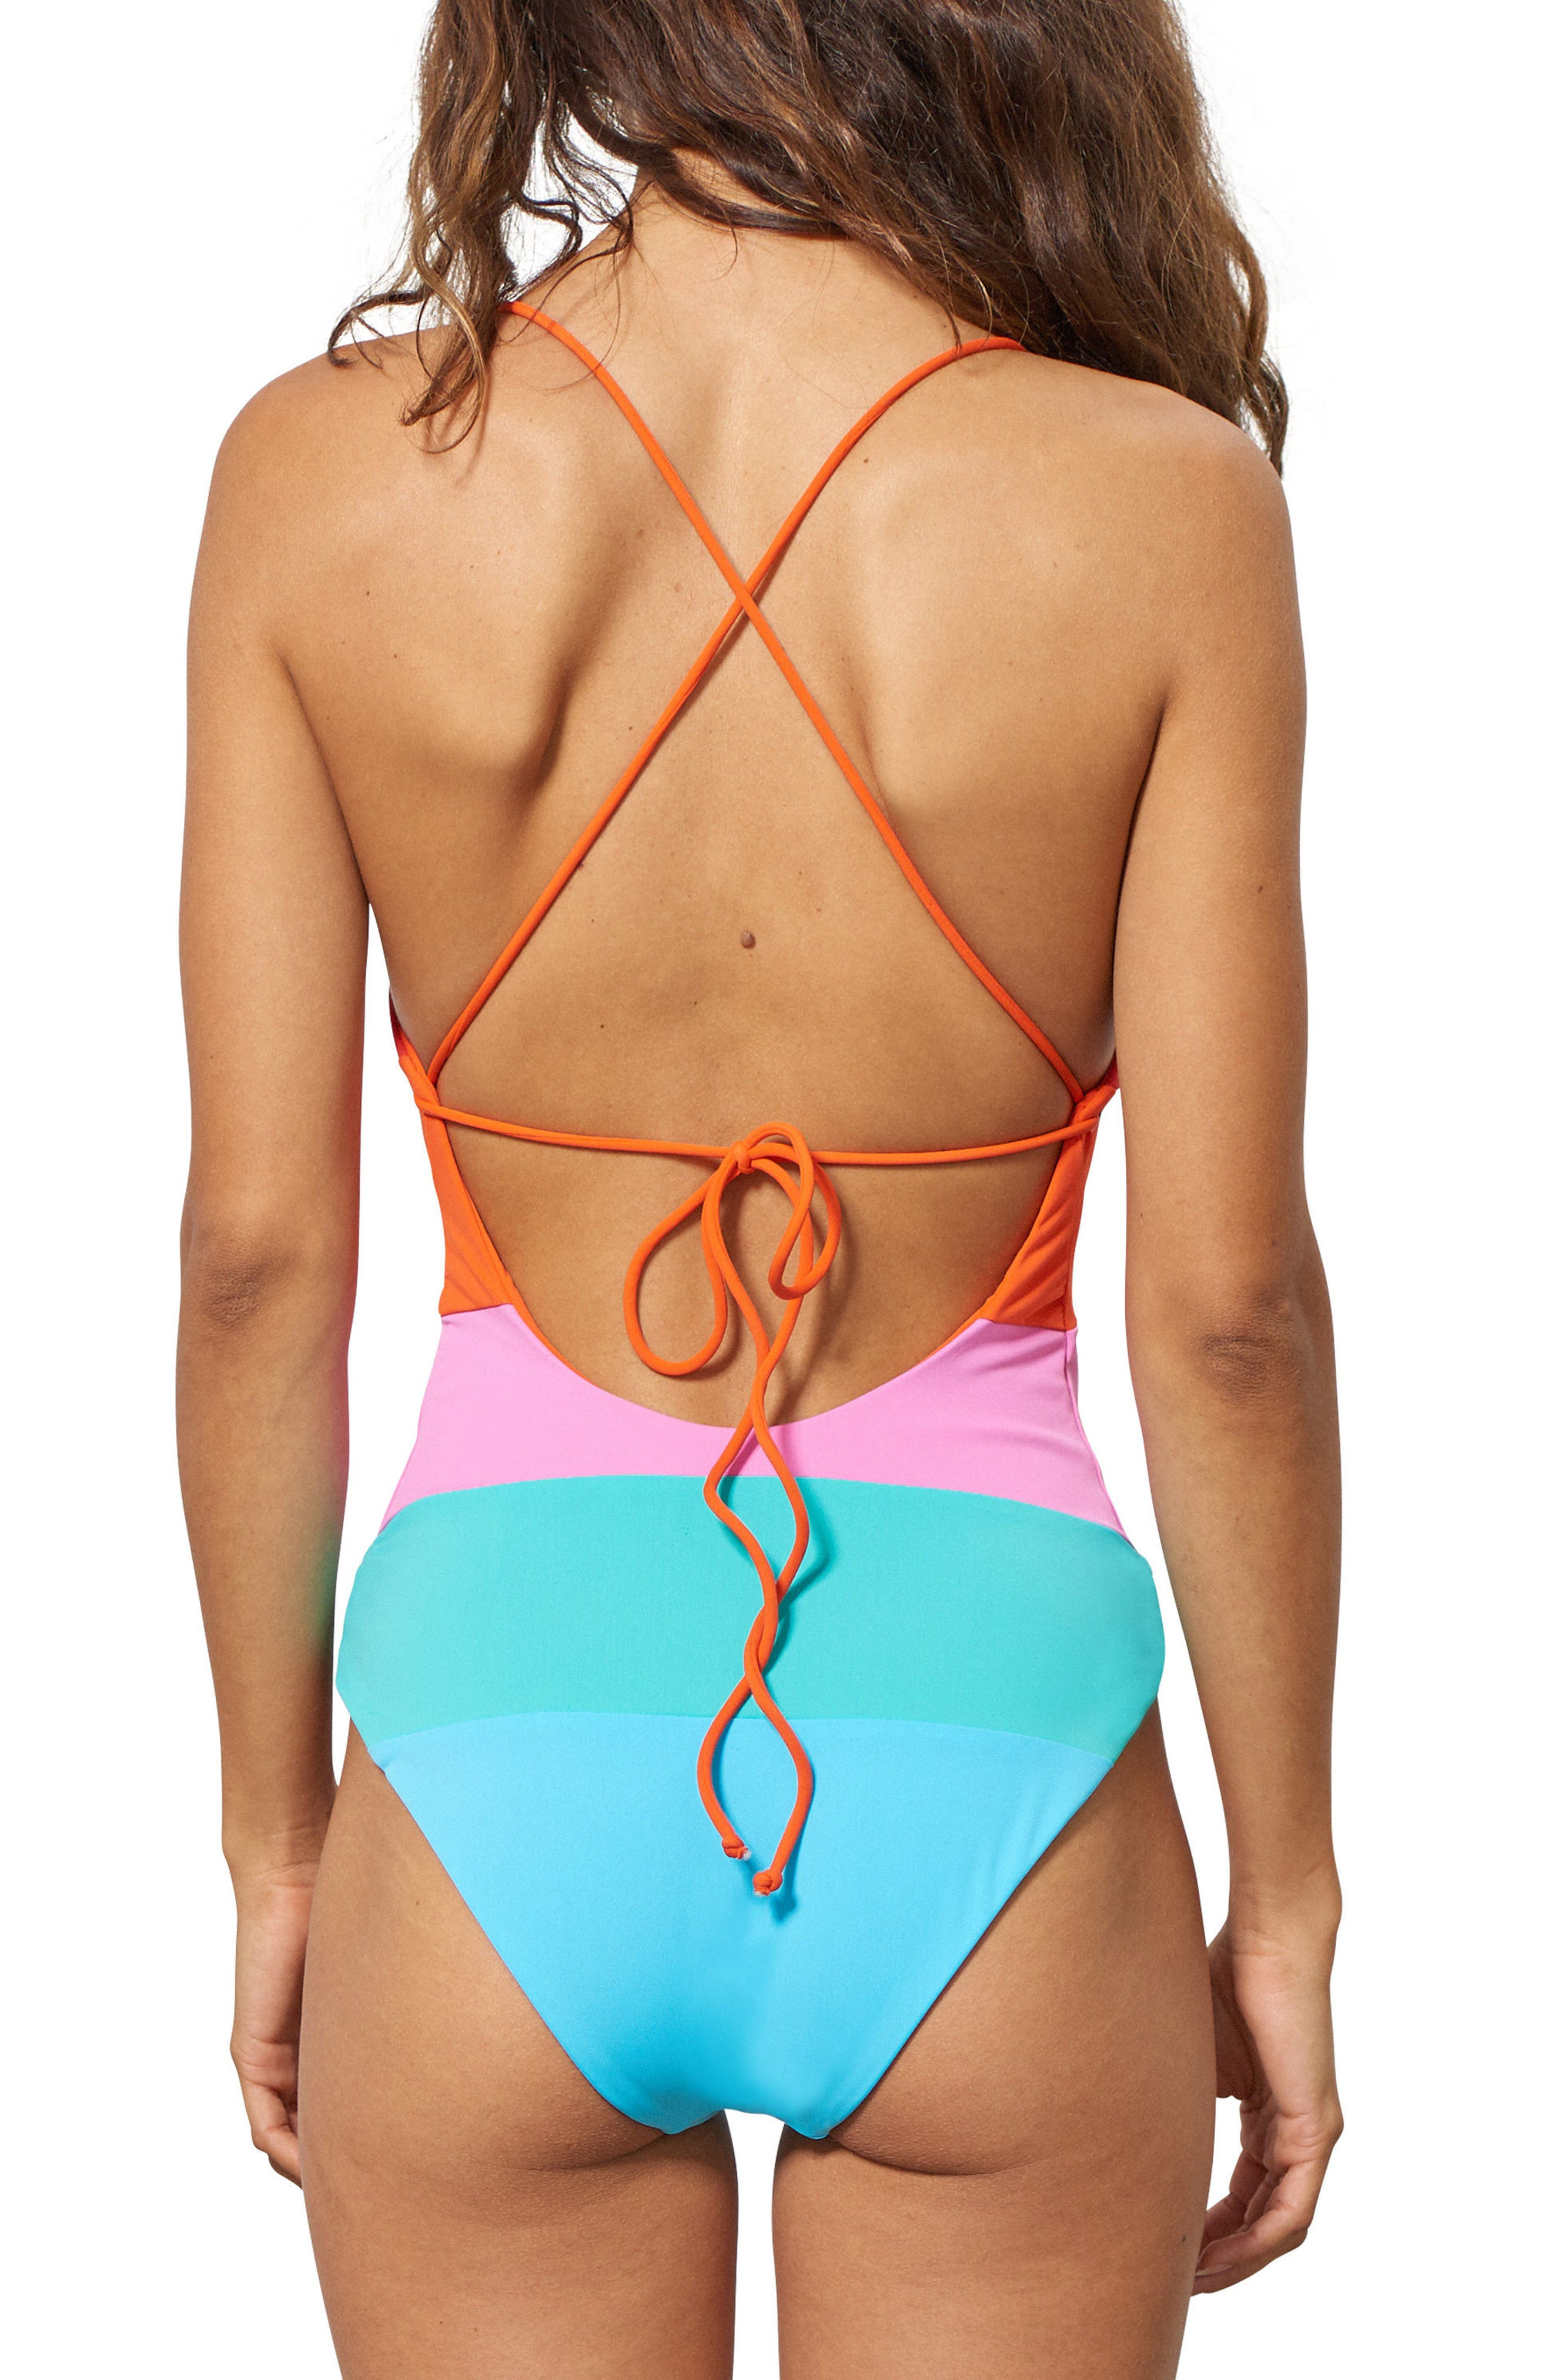 Olympia One-Piece Swimsuit,                             Alternate thumbnail 2, color,                             801